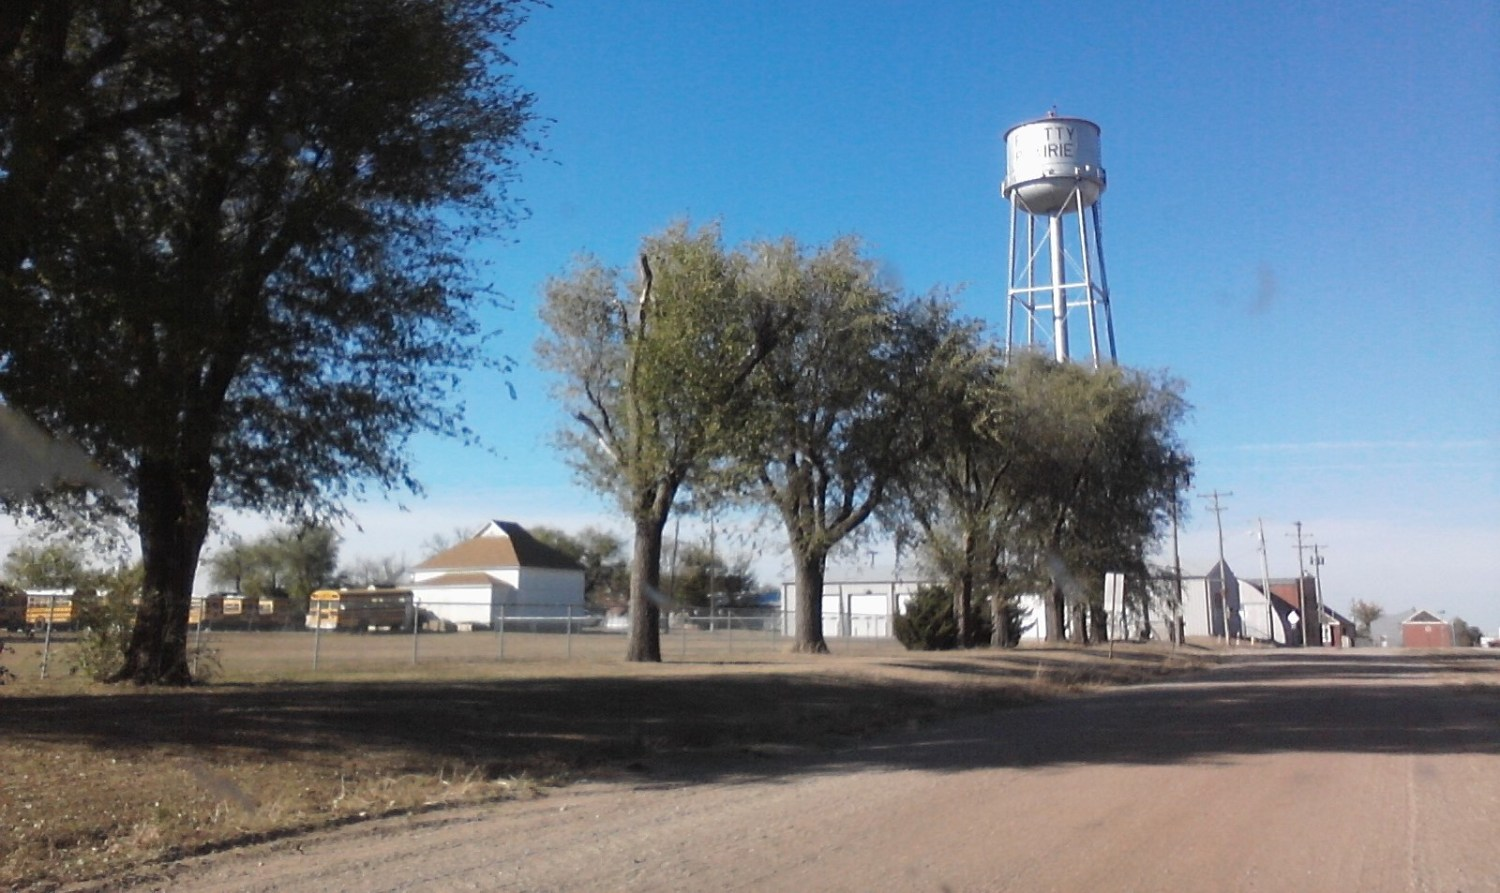 Pretty Prairie, a town in southern Kansas, exceeds the federal standard for nitrate in drinking water. Photo courtesy of Flickr/Creative Commons user bjmccray